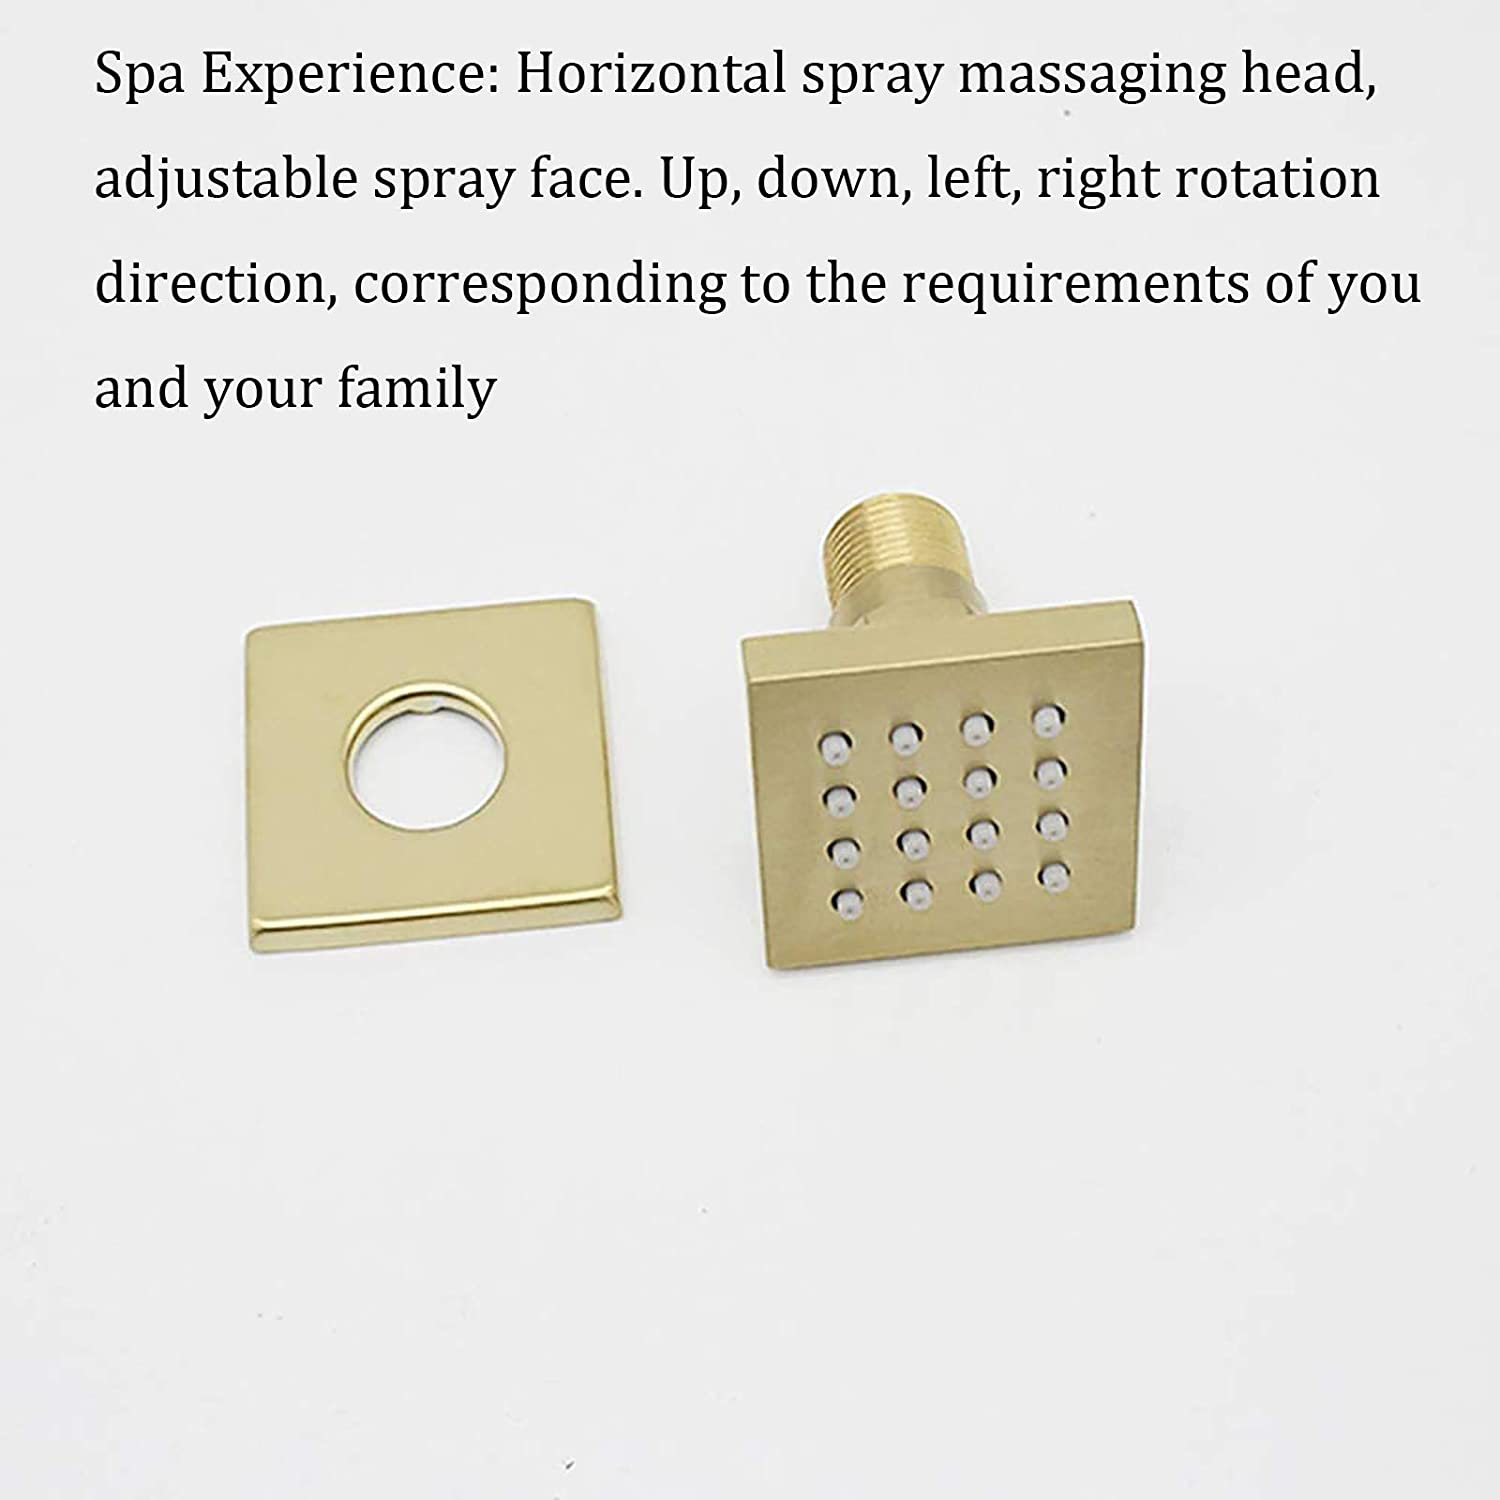 Many Colors are Available,Black b Shower Body Spray Jet 2 Inches Brass Massage Jet Bathroom Faucets Accessories Wall Mount Adjustable Shower Side Jets for Shower Spa